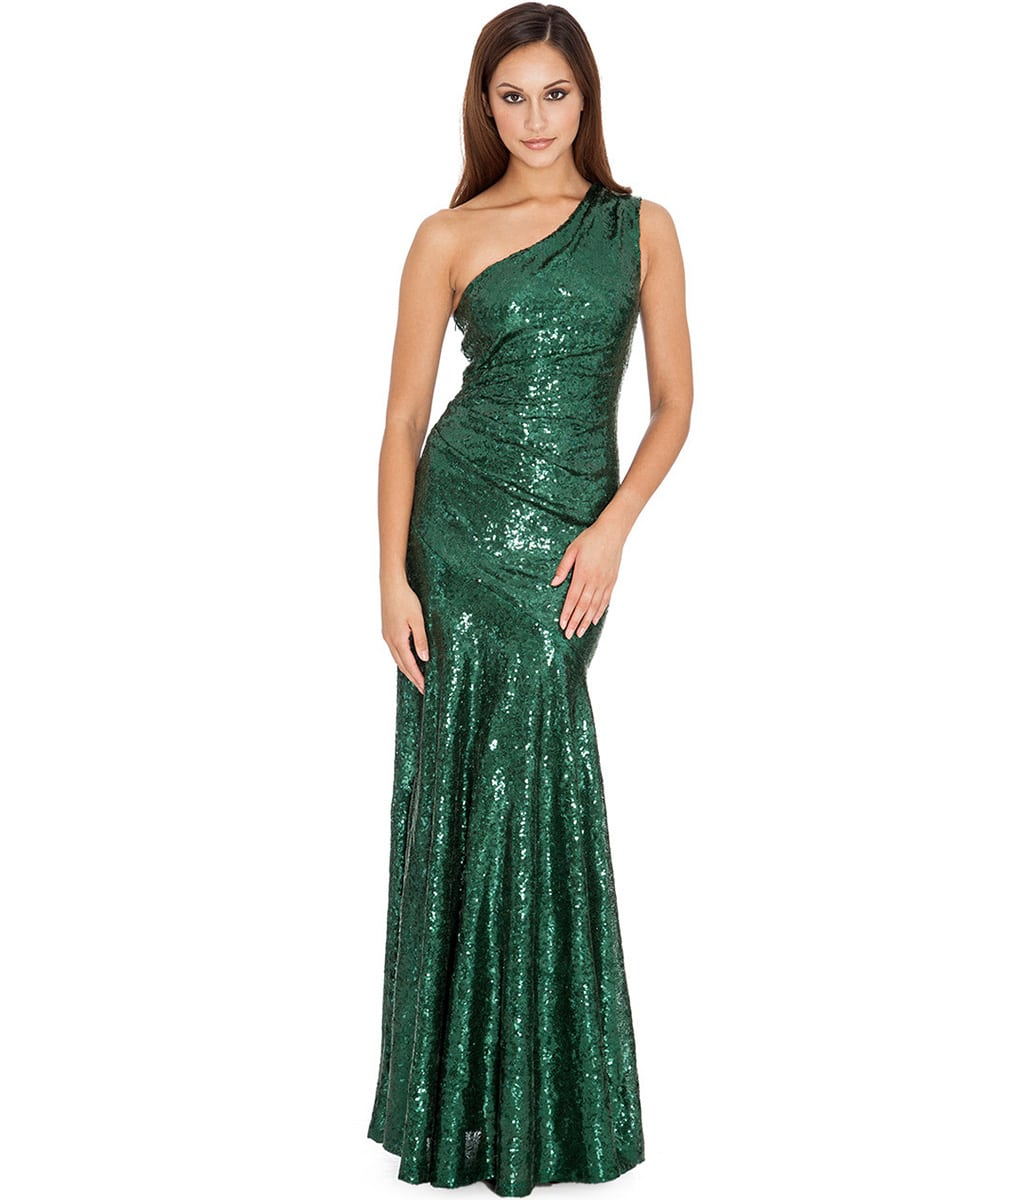 3b1aae91ef6 City Goddess - Emerald Green One-Shoulder Sequins Gown | Alila